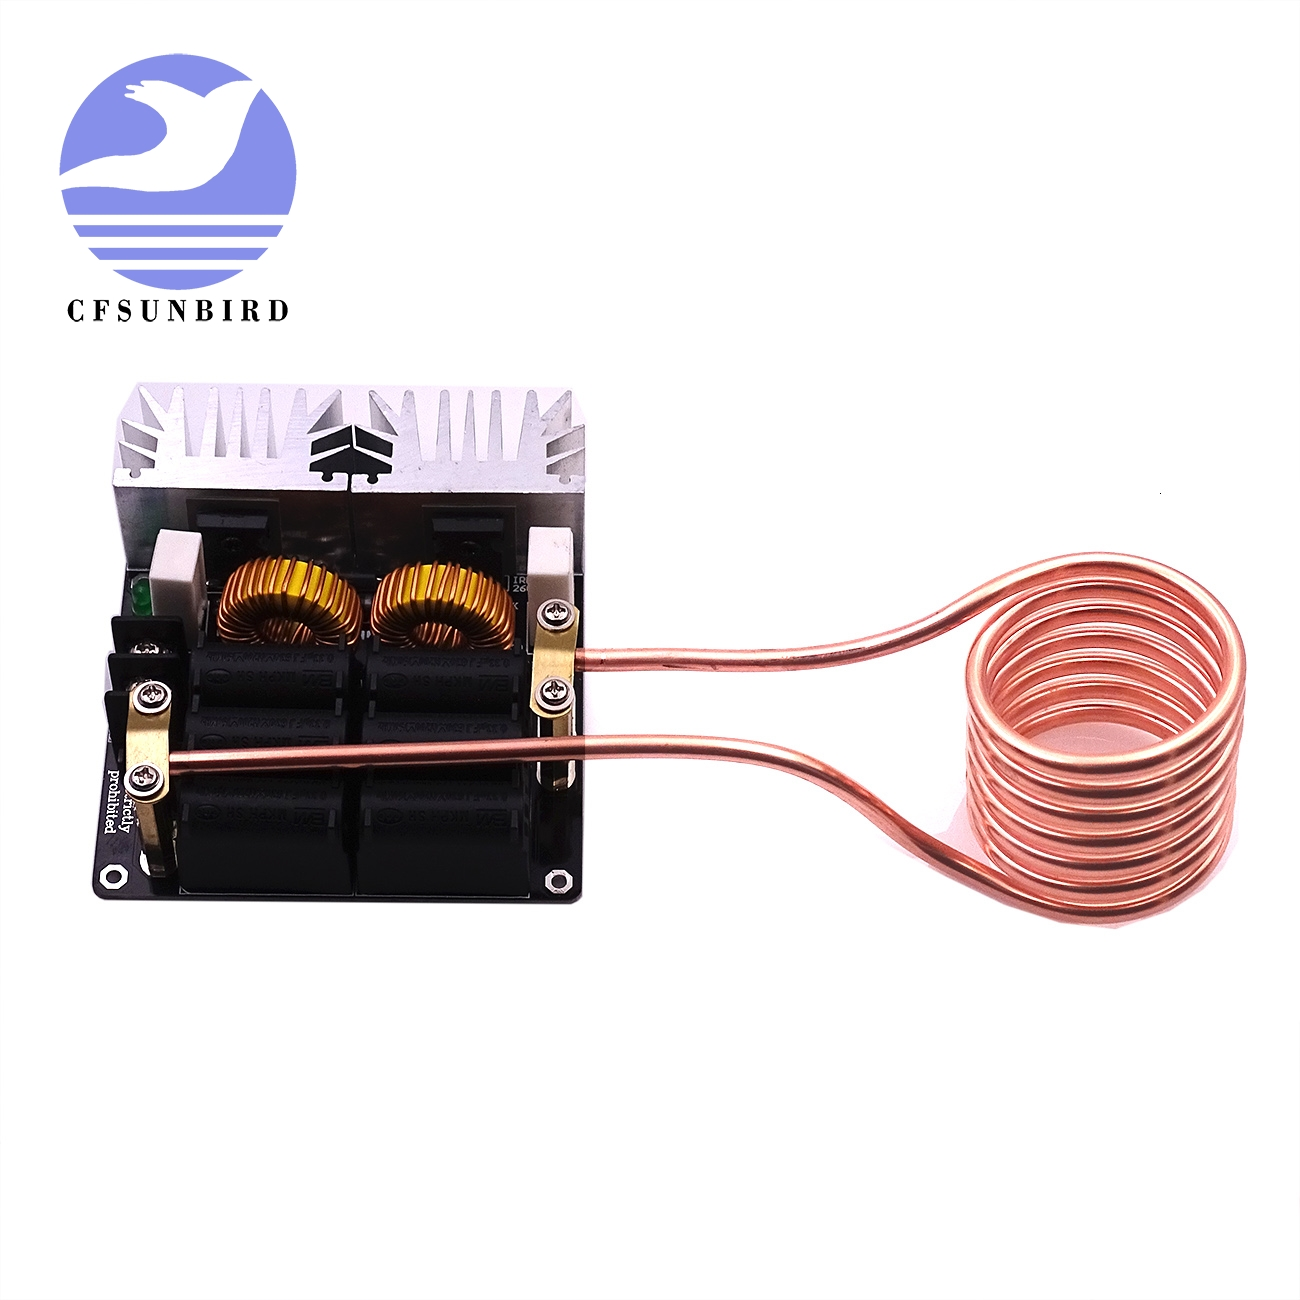 CFsunbird 1Set 20A 1000W 12V-48V ZVS Low Zero Voltage Induction Heating Board Module Flyback Driver Heater High Power For DIY